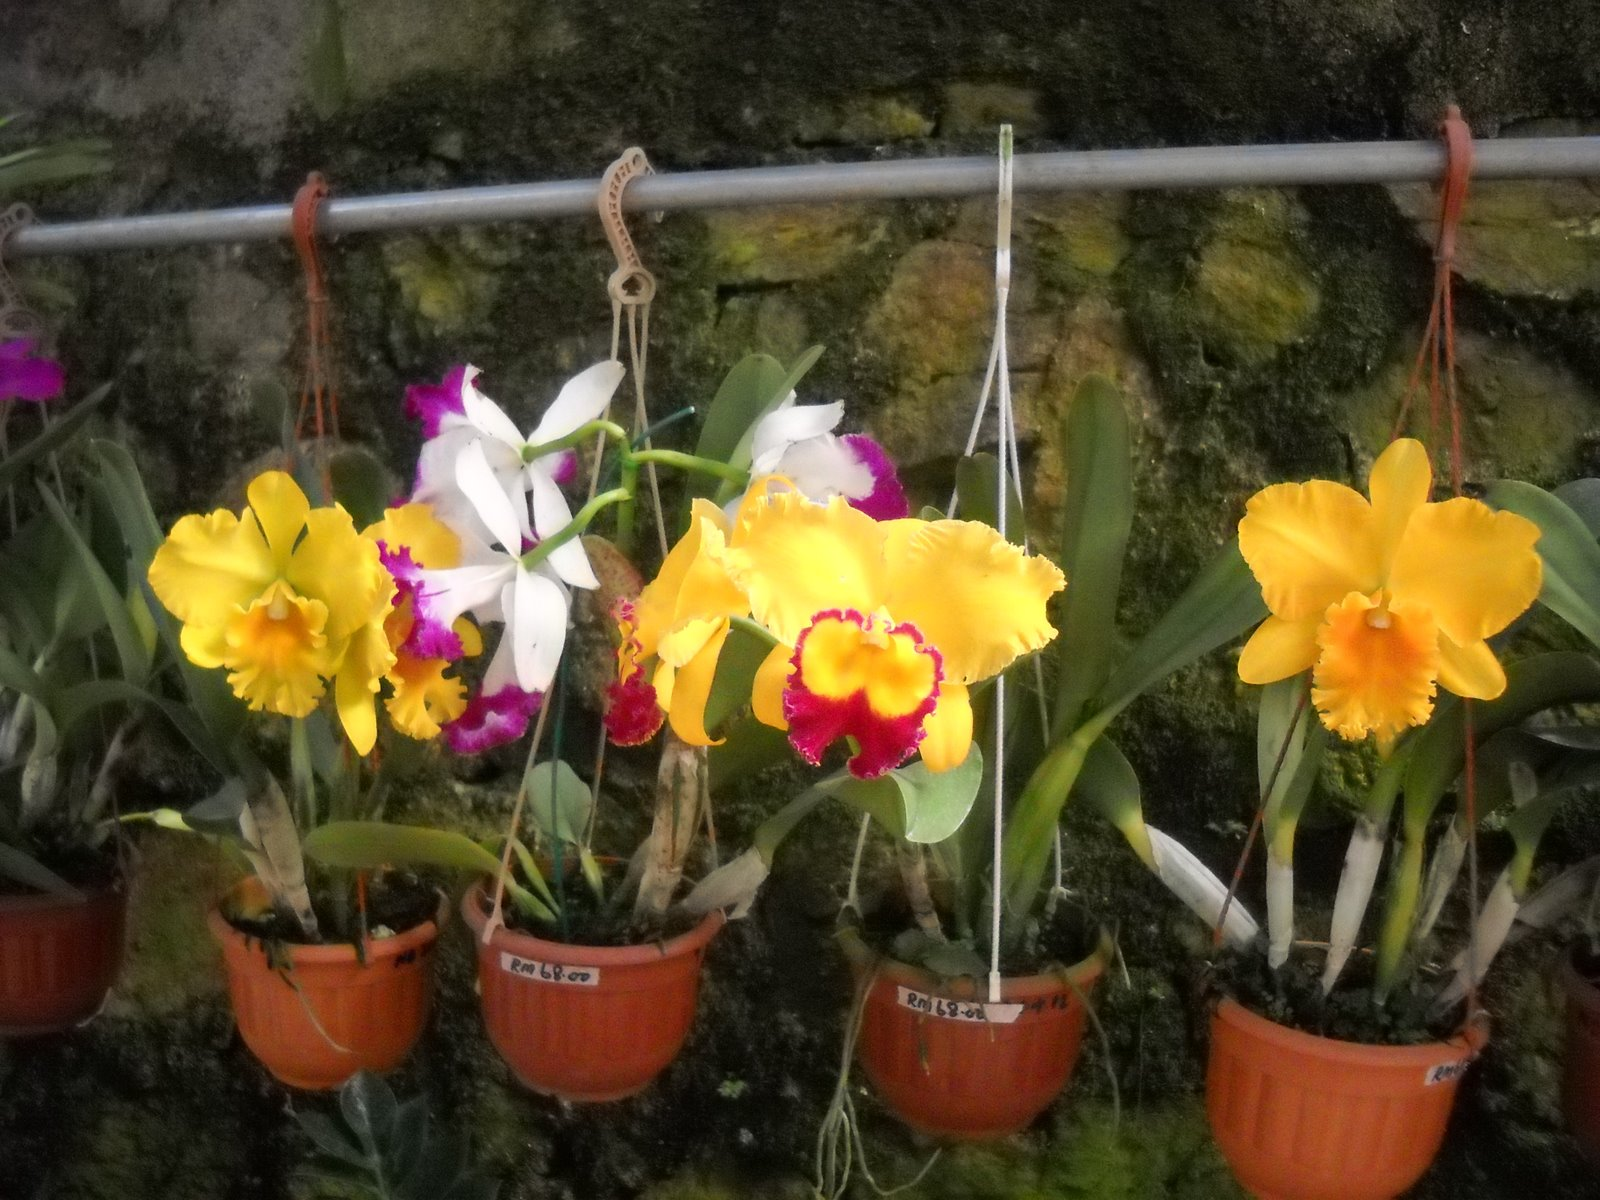 Stories from around the world orchid flowers cameron highland but after that next bloom flower so small lah the reason could be orchid flowers are from cameron highland with cool climate izmirmasajfo